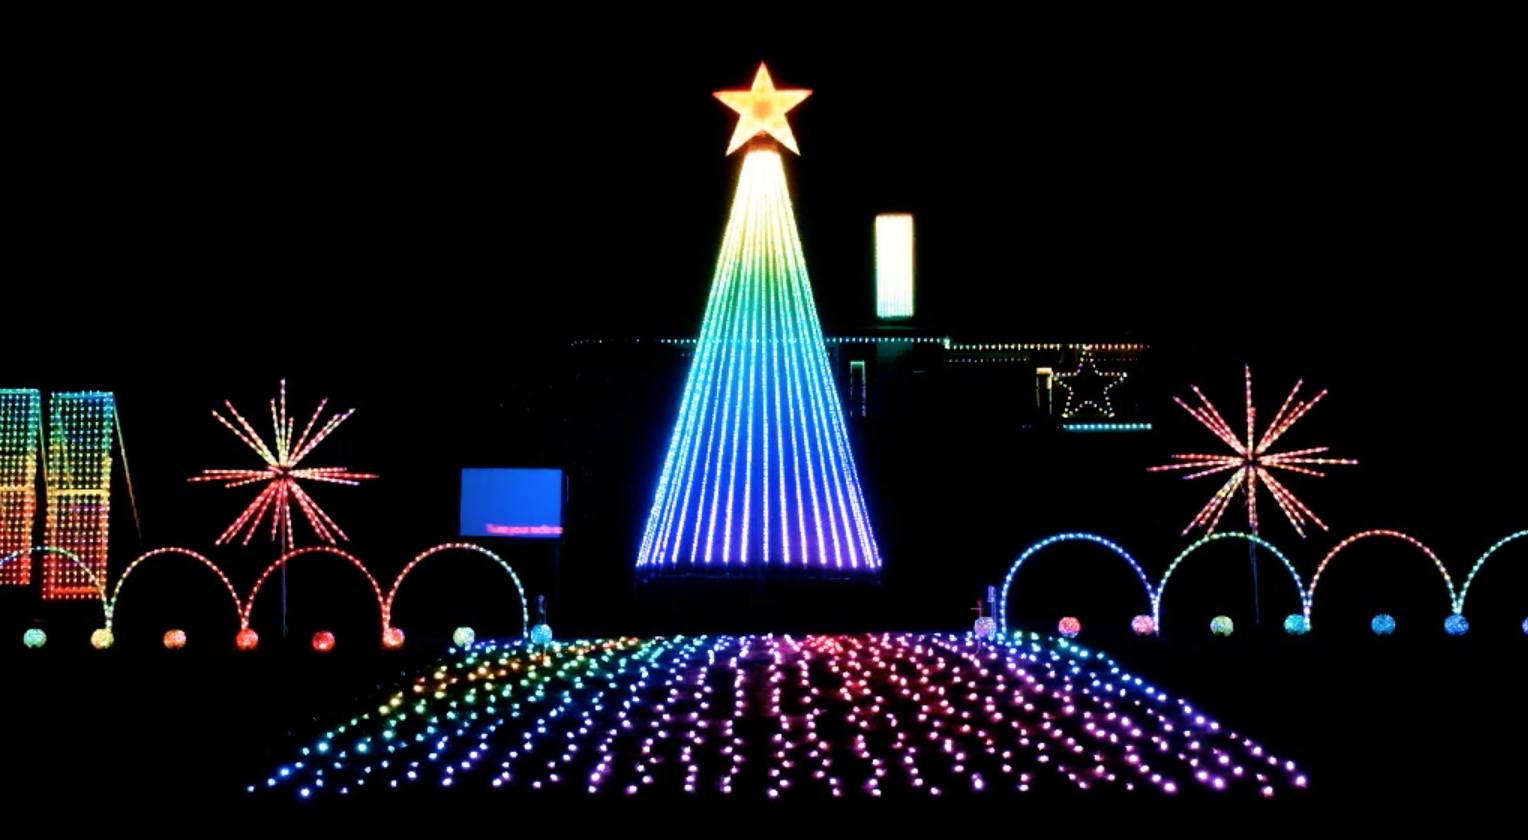 Marvelous The Laberge Christmas Lights In 2015 (Paul Laberge)